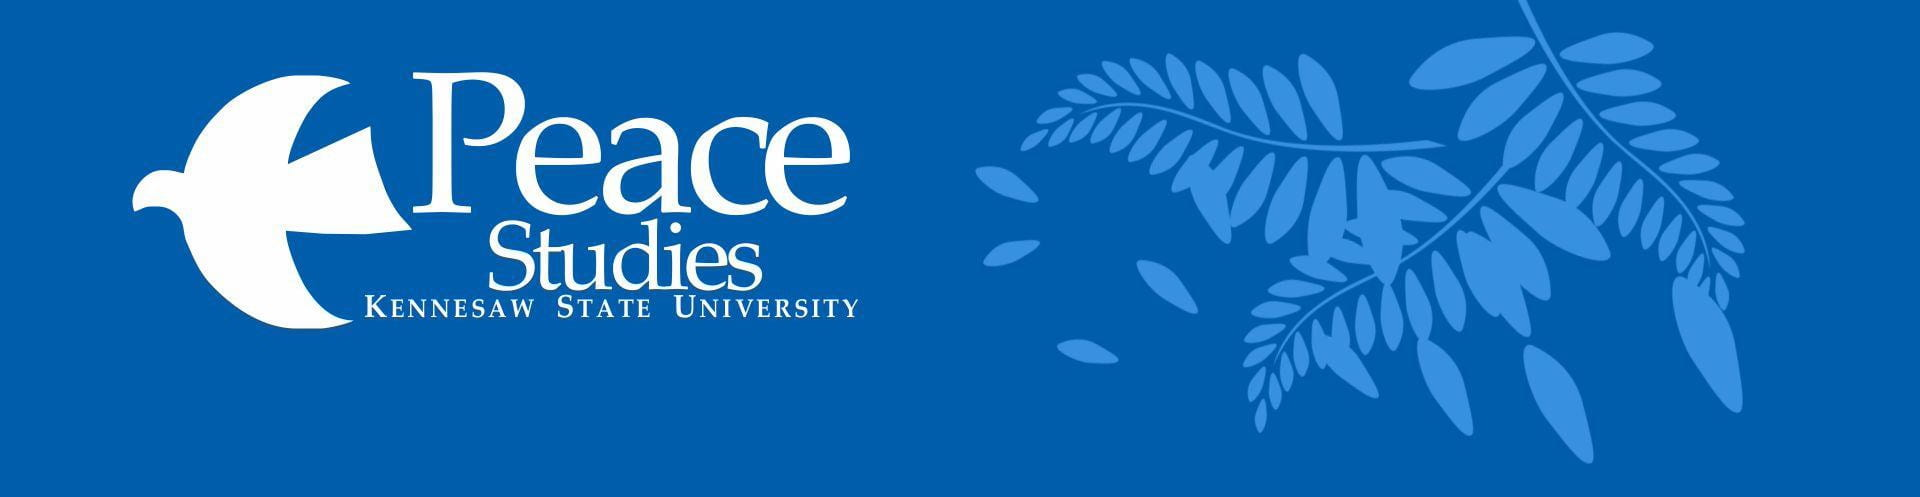 Blue and white peace studies minor banner